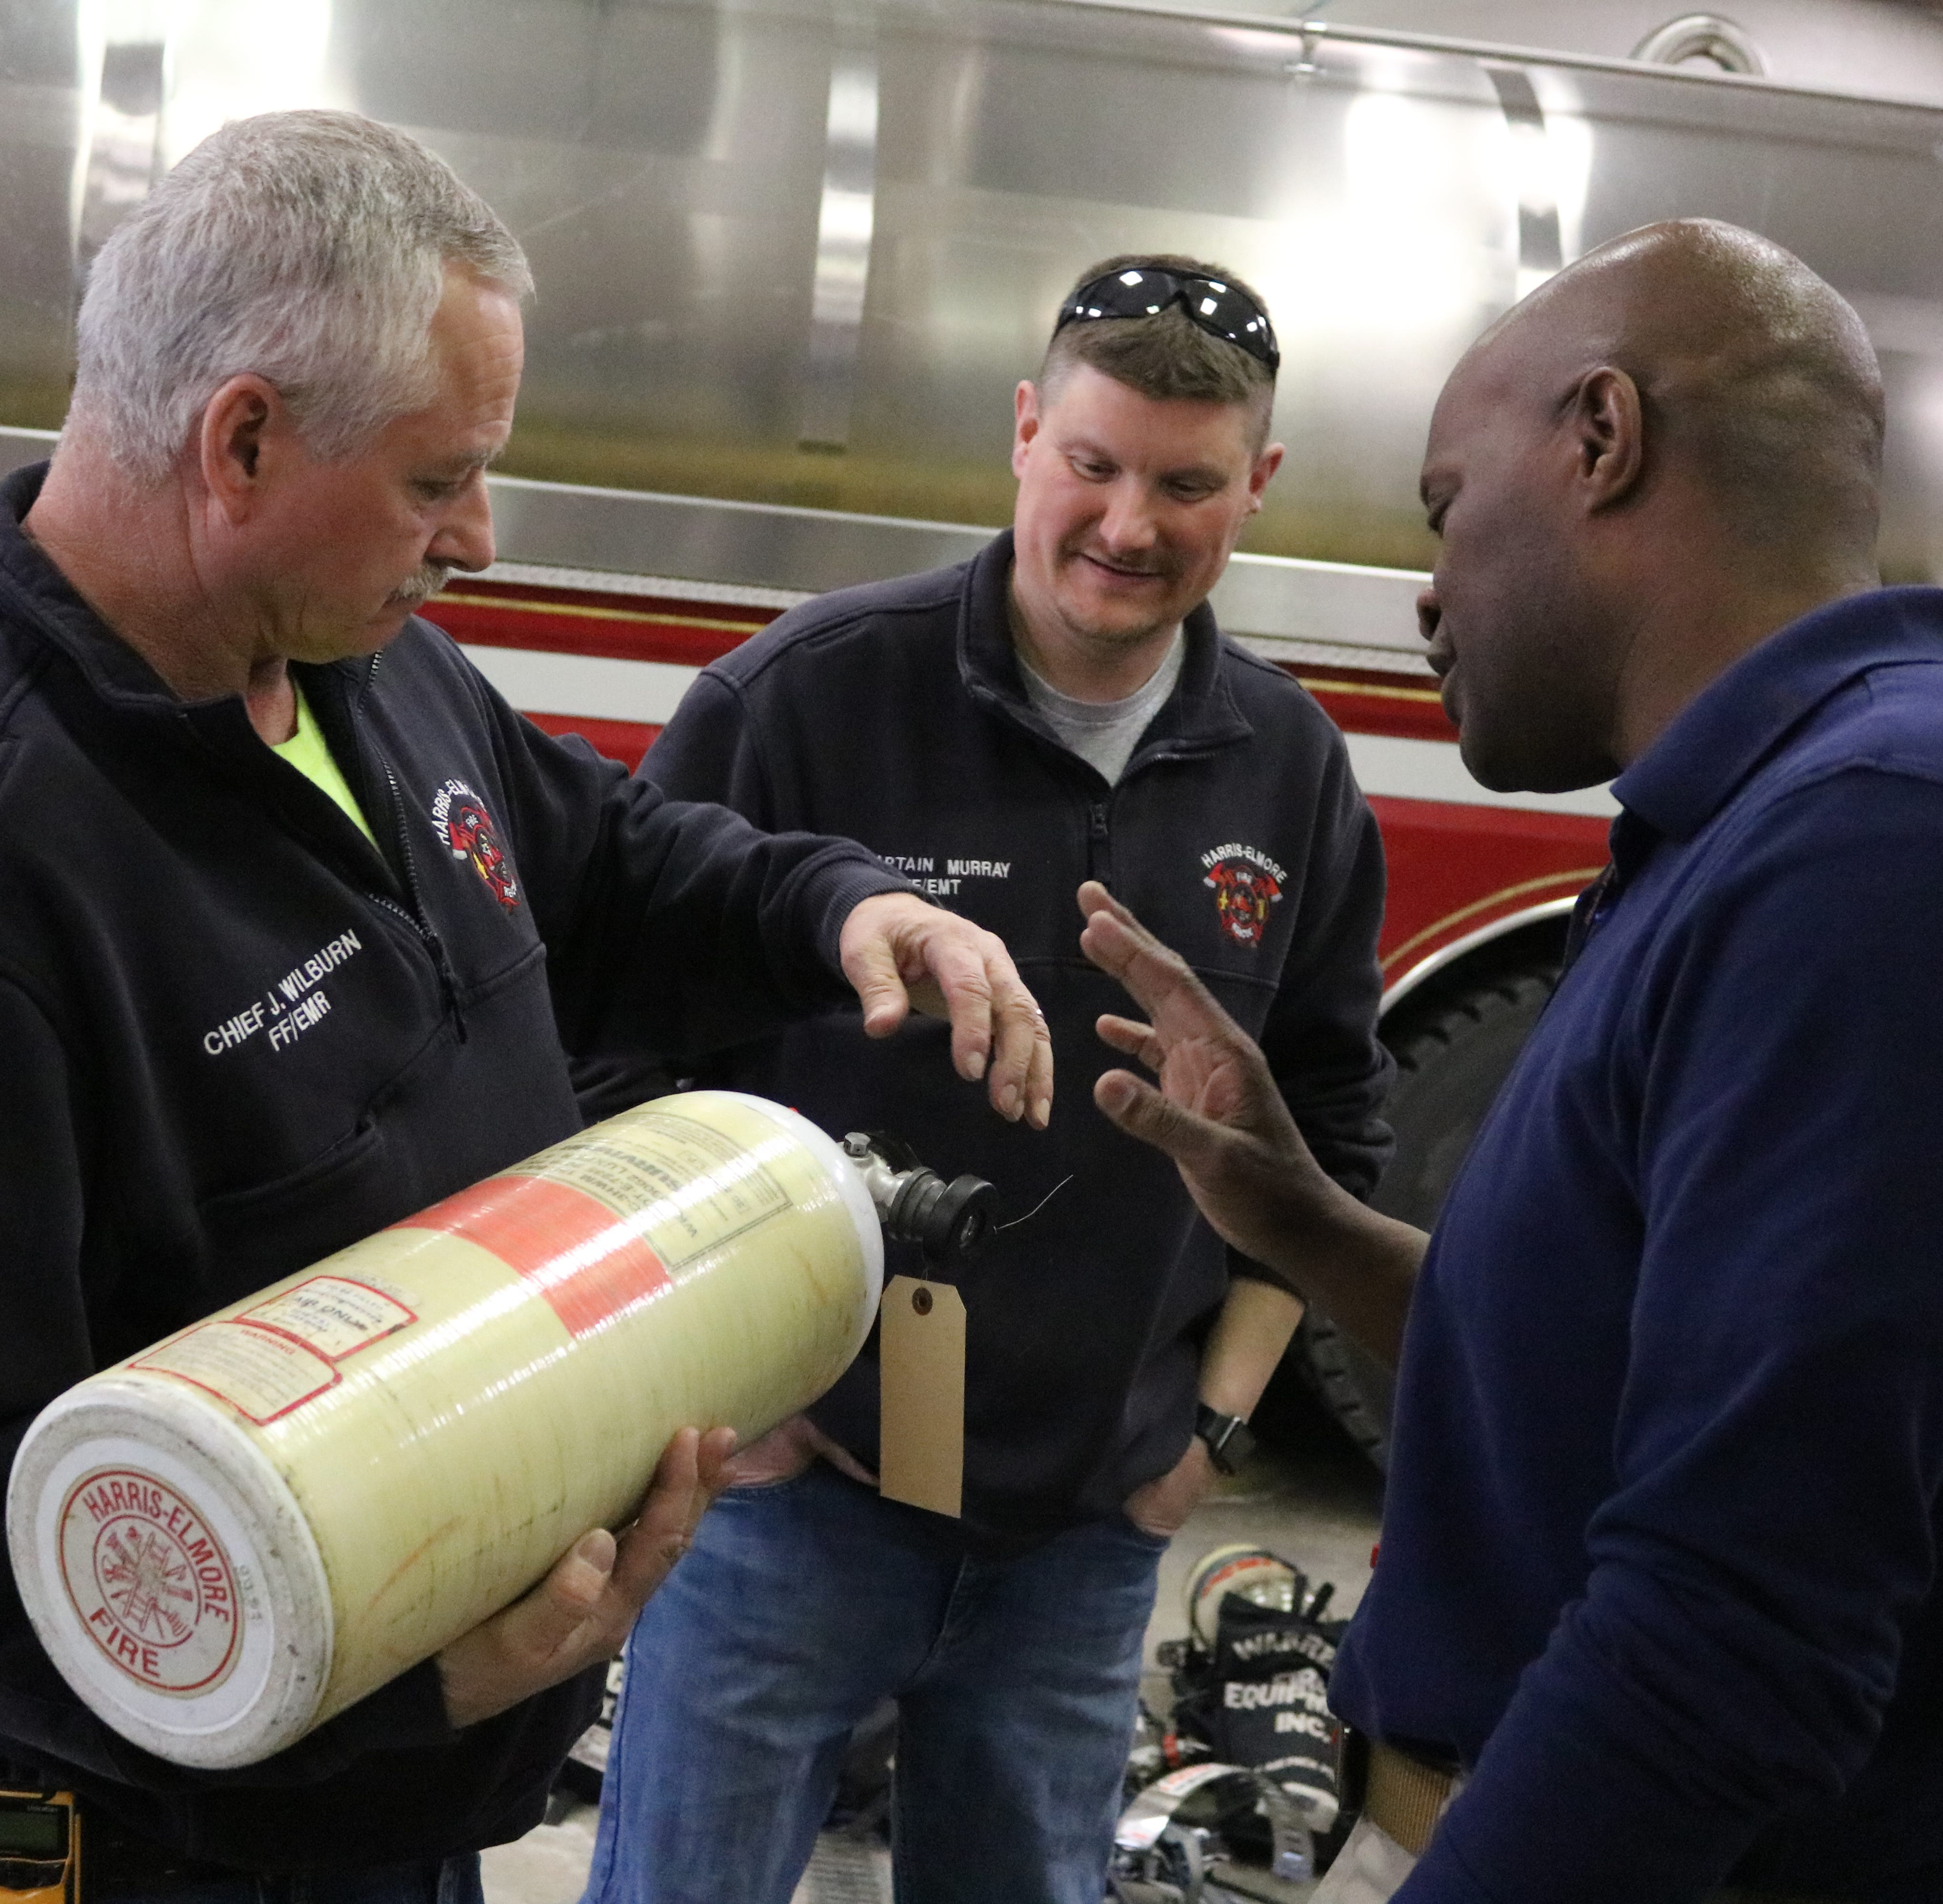 Harris-Elmore Fire Department donates old equipment to countries in need